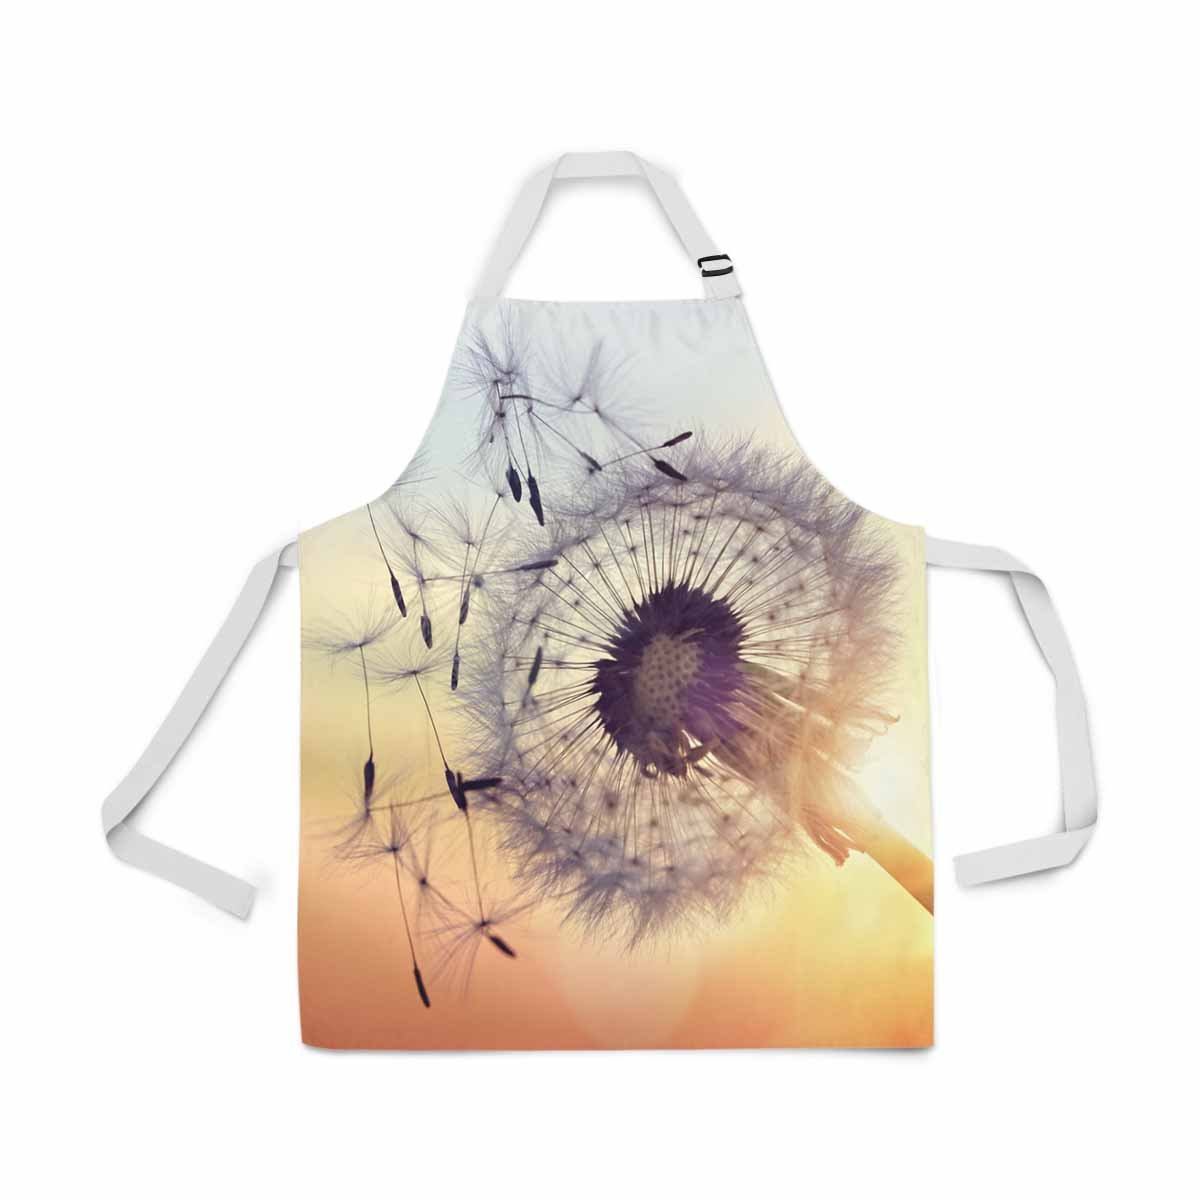 InterestPrint Dandelion Silhouette Against Sunset Seeds Blowing Wind Adjustable Bib Apron for Women Men Girls Chef with Pockets, Kitchen Apron for Cooking Baking Gardening Pet Grooming Cleaning